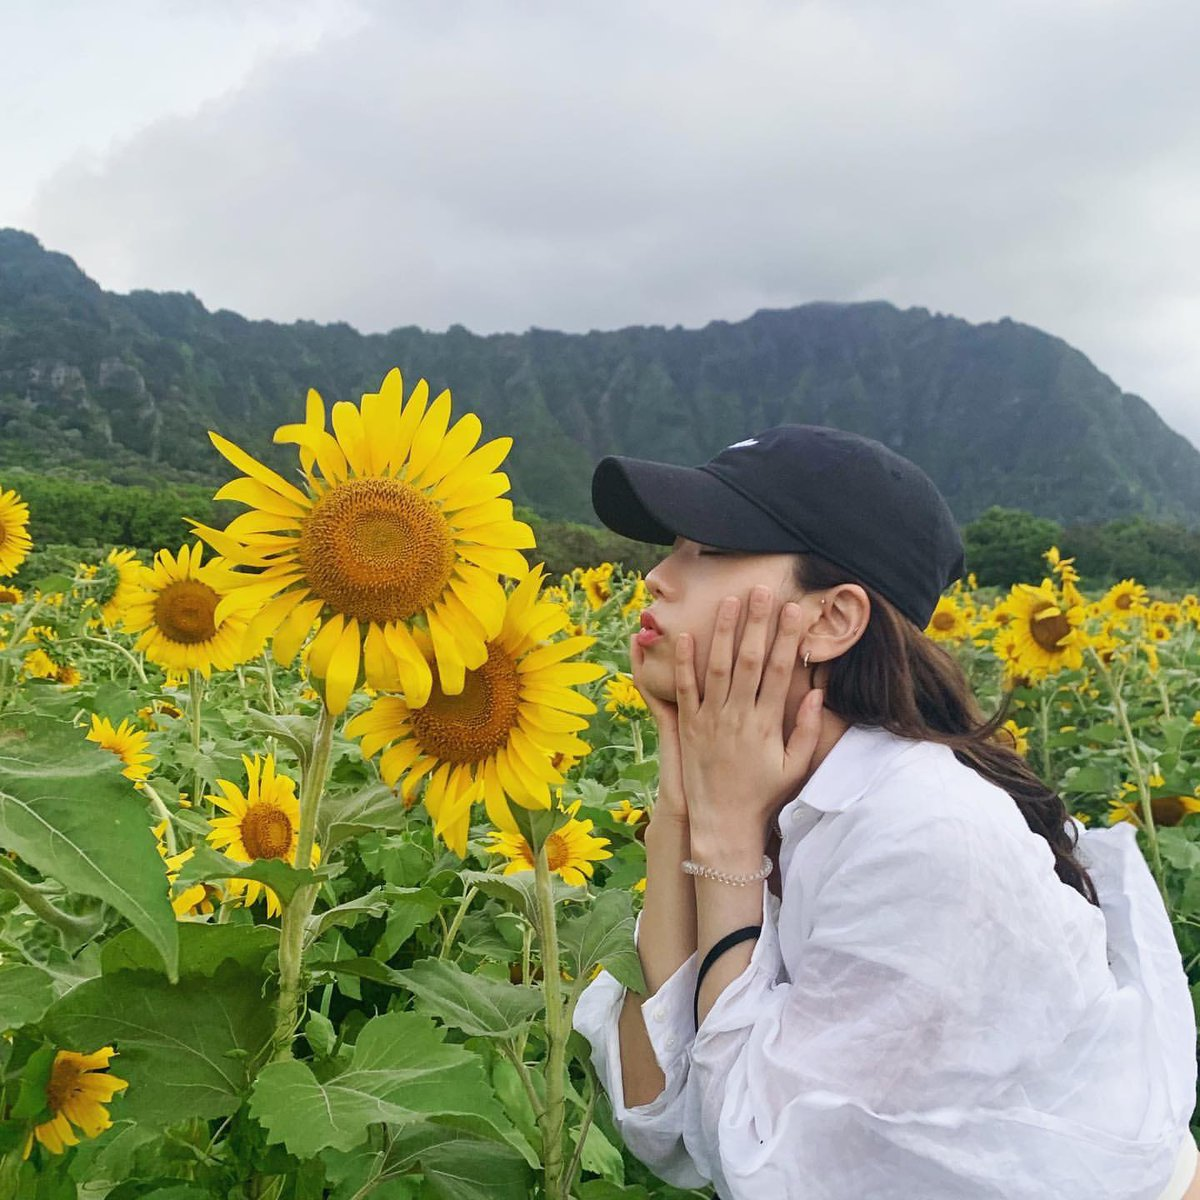 _soooya 𝐮𝐩𝐝𝐚𝐭𝐞 ┊[INSTAGRAM POST + VIDEO] sooyaaa__ : ☀️sunflower🌻 https://www.instagram.com/p/B0O5dd5ptk5/?igshid=1c4p7og1e0ale … (2P) #JISOOSTAGRAM